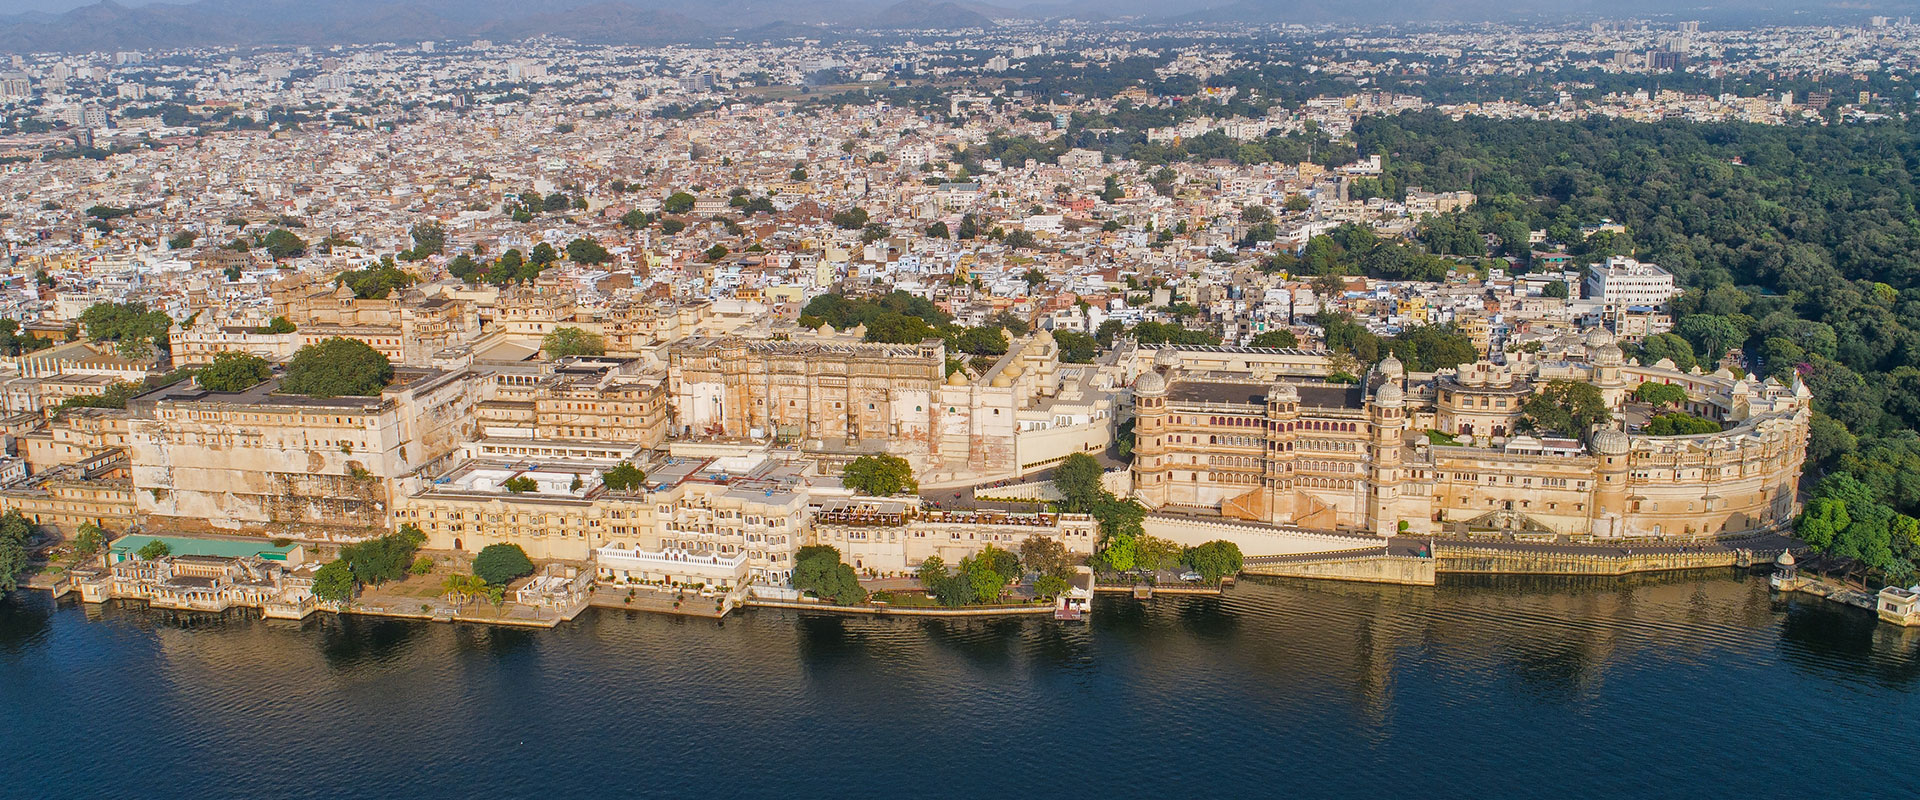 Royale Palace Of Udaipur | Eternal Mewar